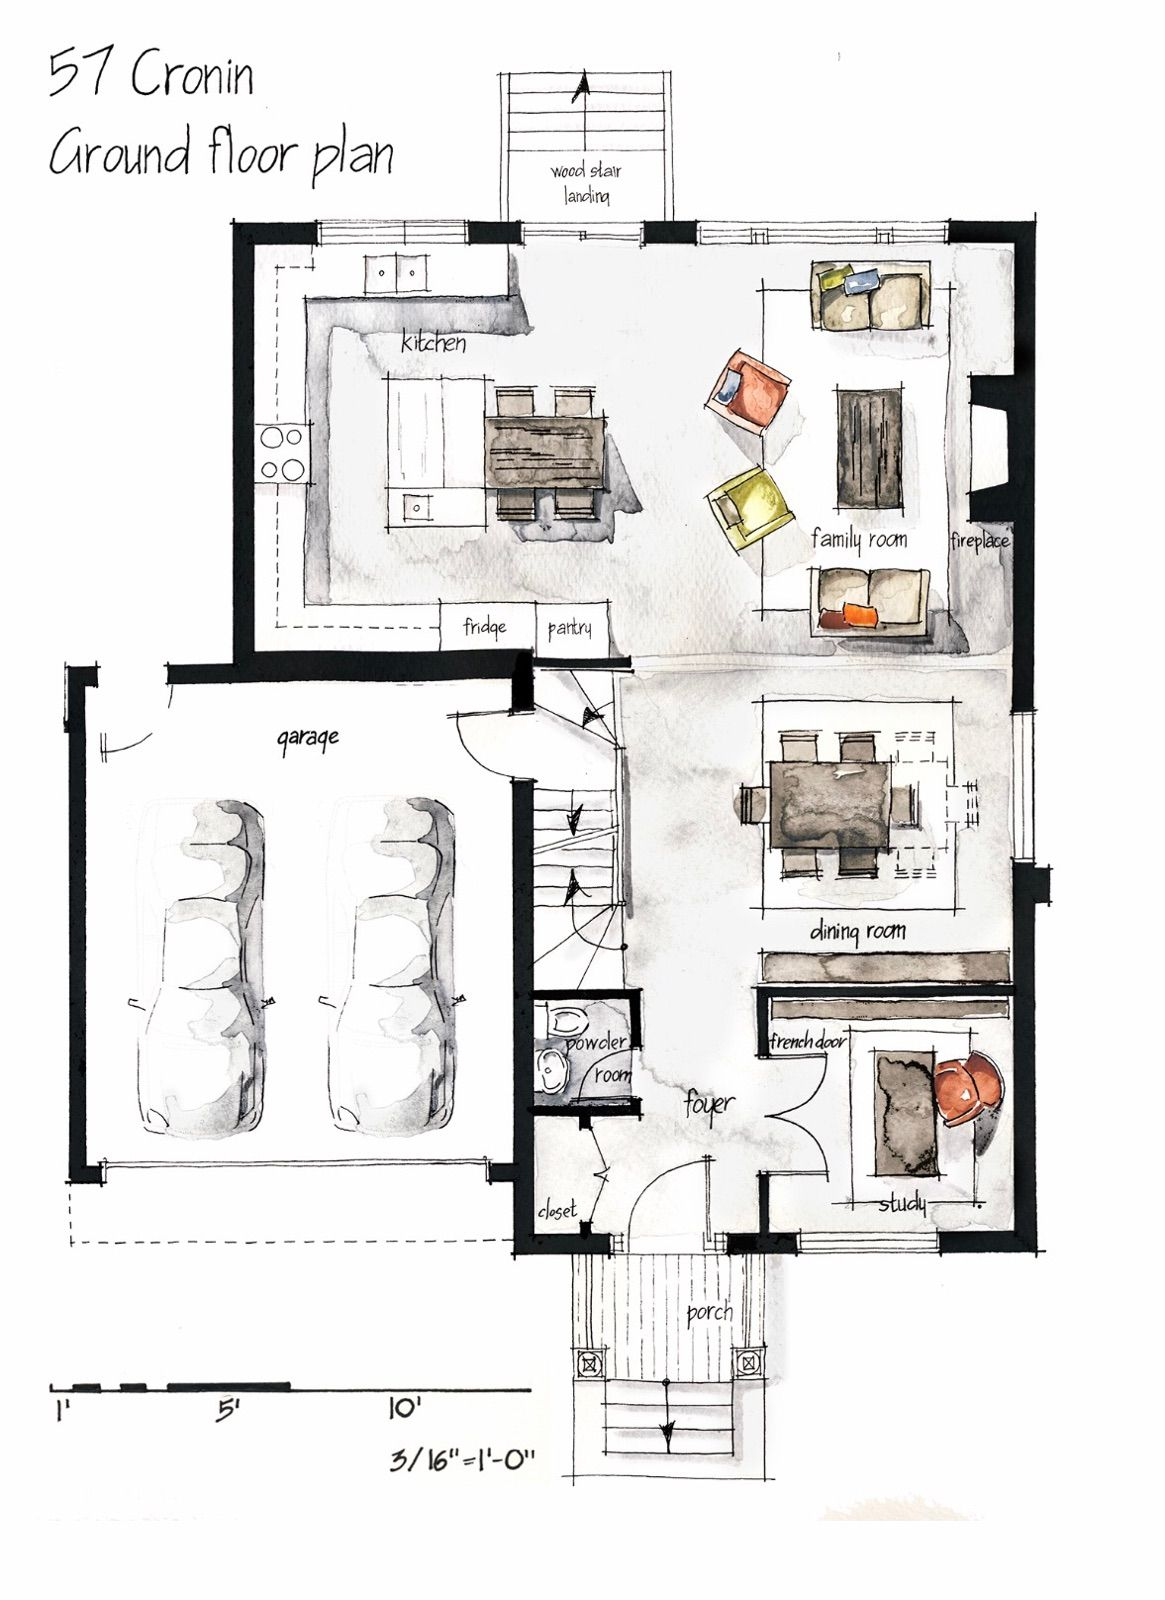 Designing A Space With User Comfort In Mind Our Body Dimensions And The Way We Move And Perce Interior Design Sketches Interior Design Plan Floor Plan Design